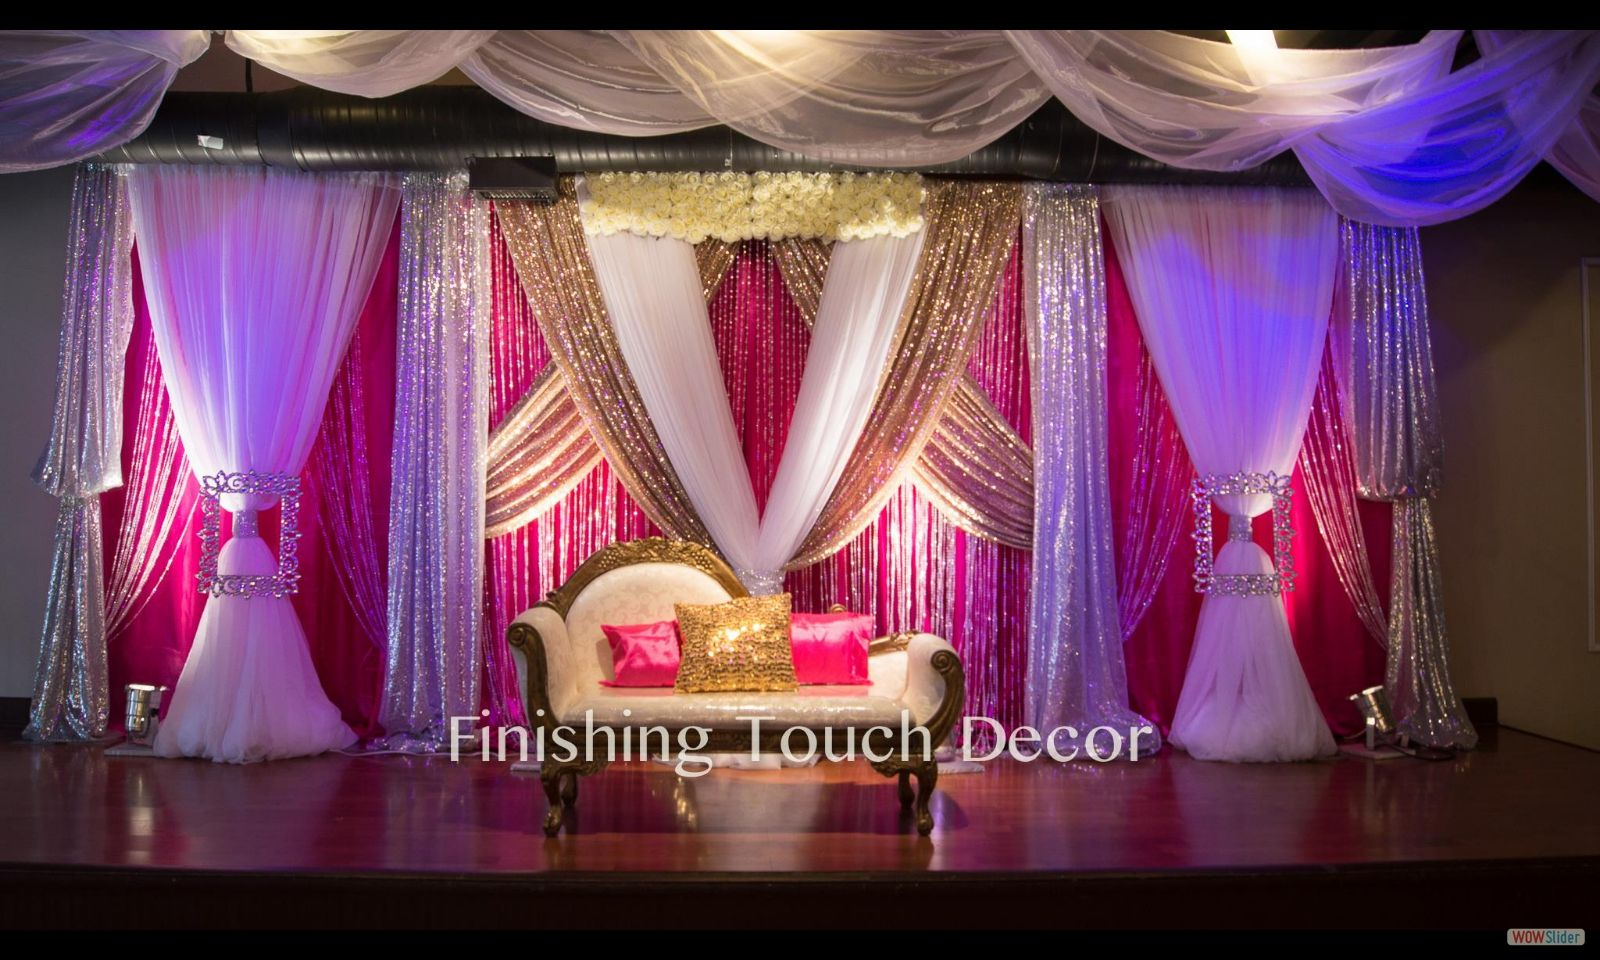 Finishing Touch Decor - Indian Wedding Decorations | Wedding Stuff ...